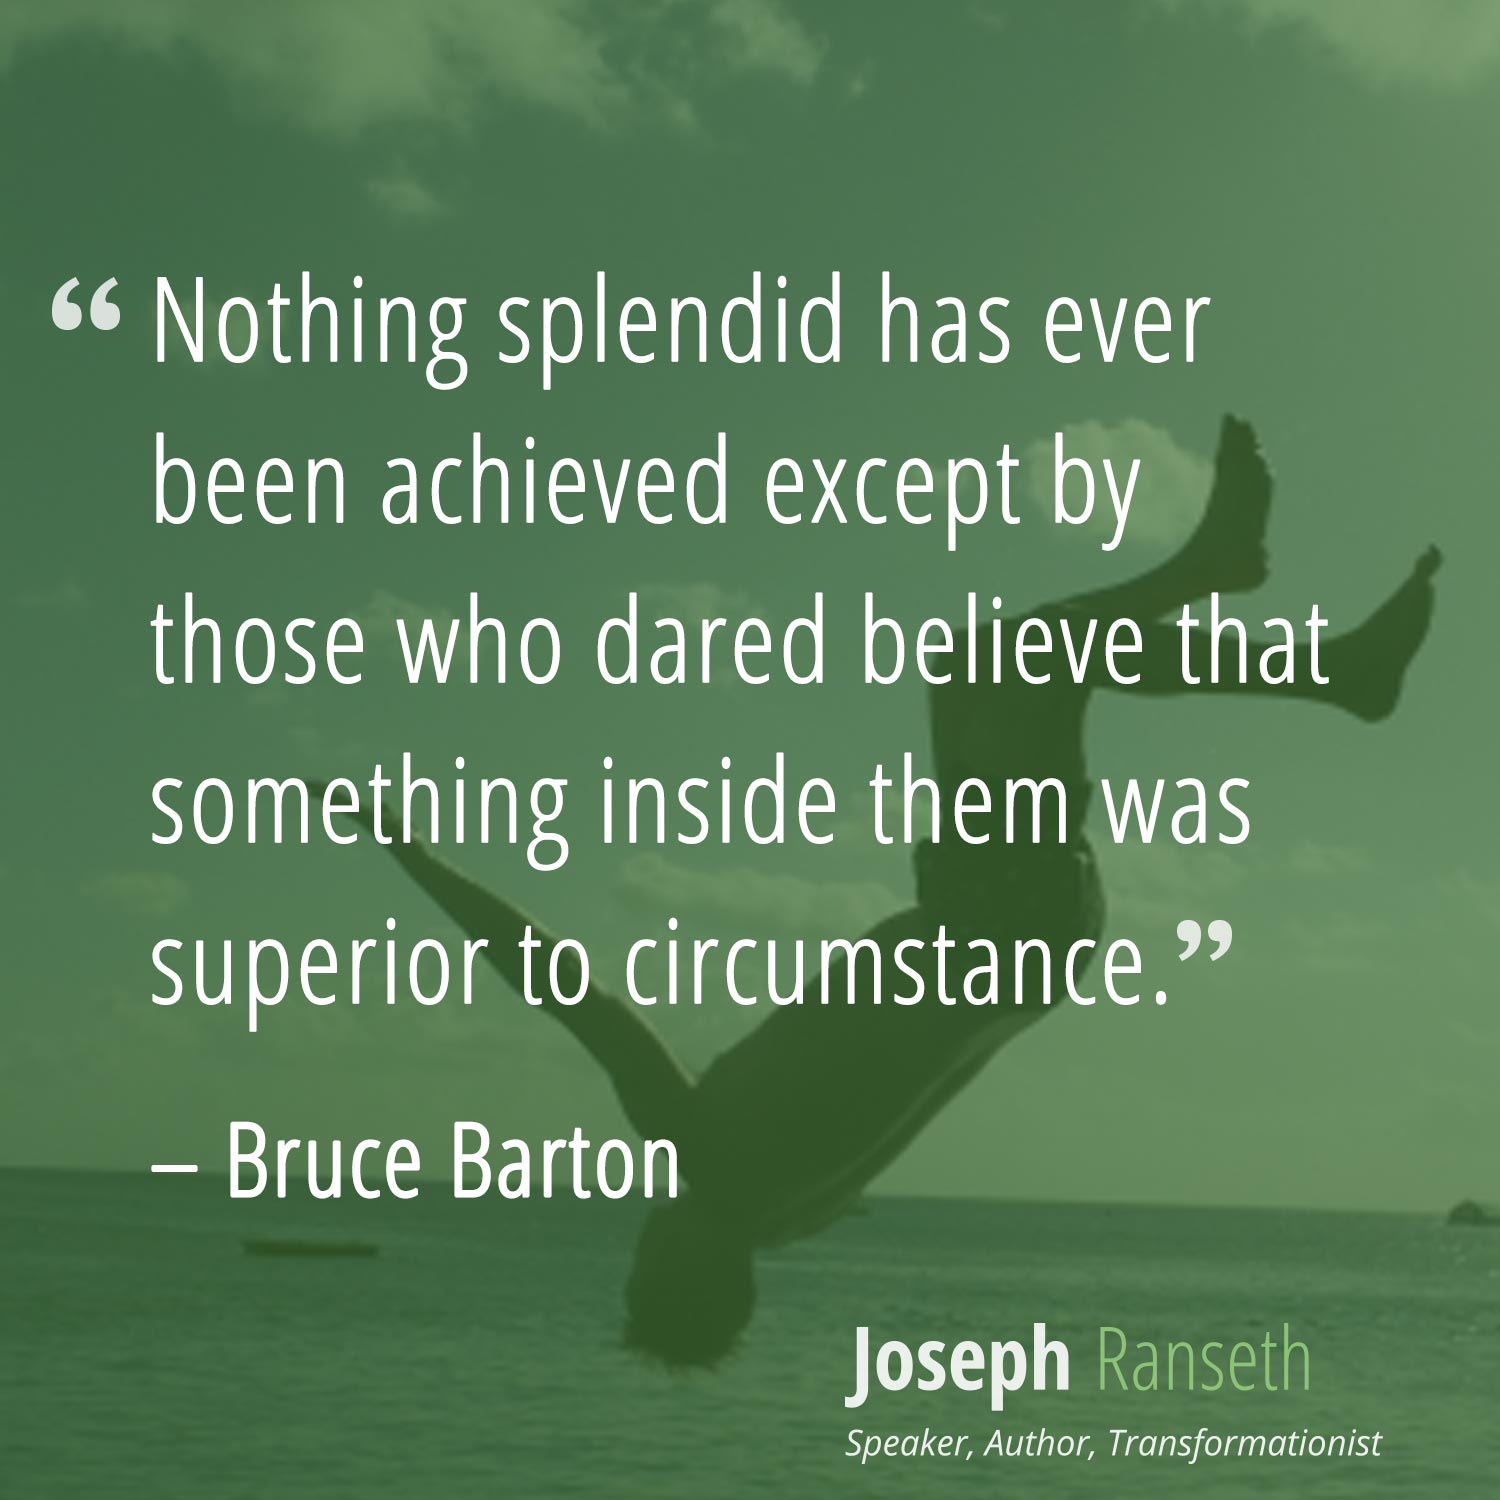 """""""Nothing splendid has ever been achieved except by those who dared believe that something inside them was superior to circumstance."""" - Bruce Barton #quotes #inspiration"""